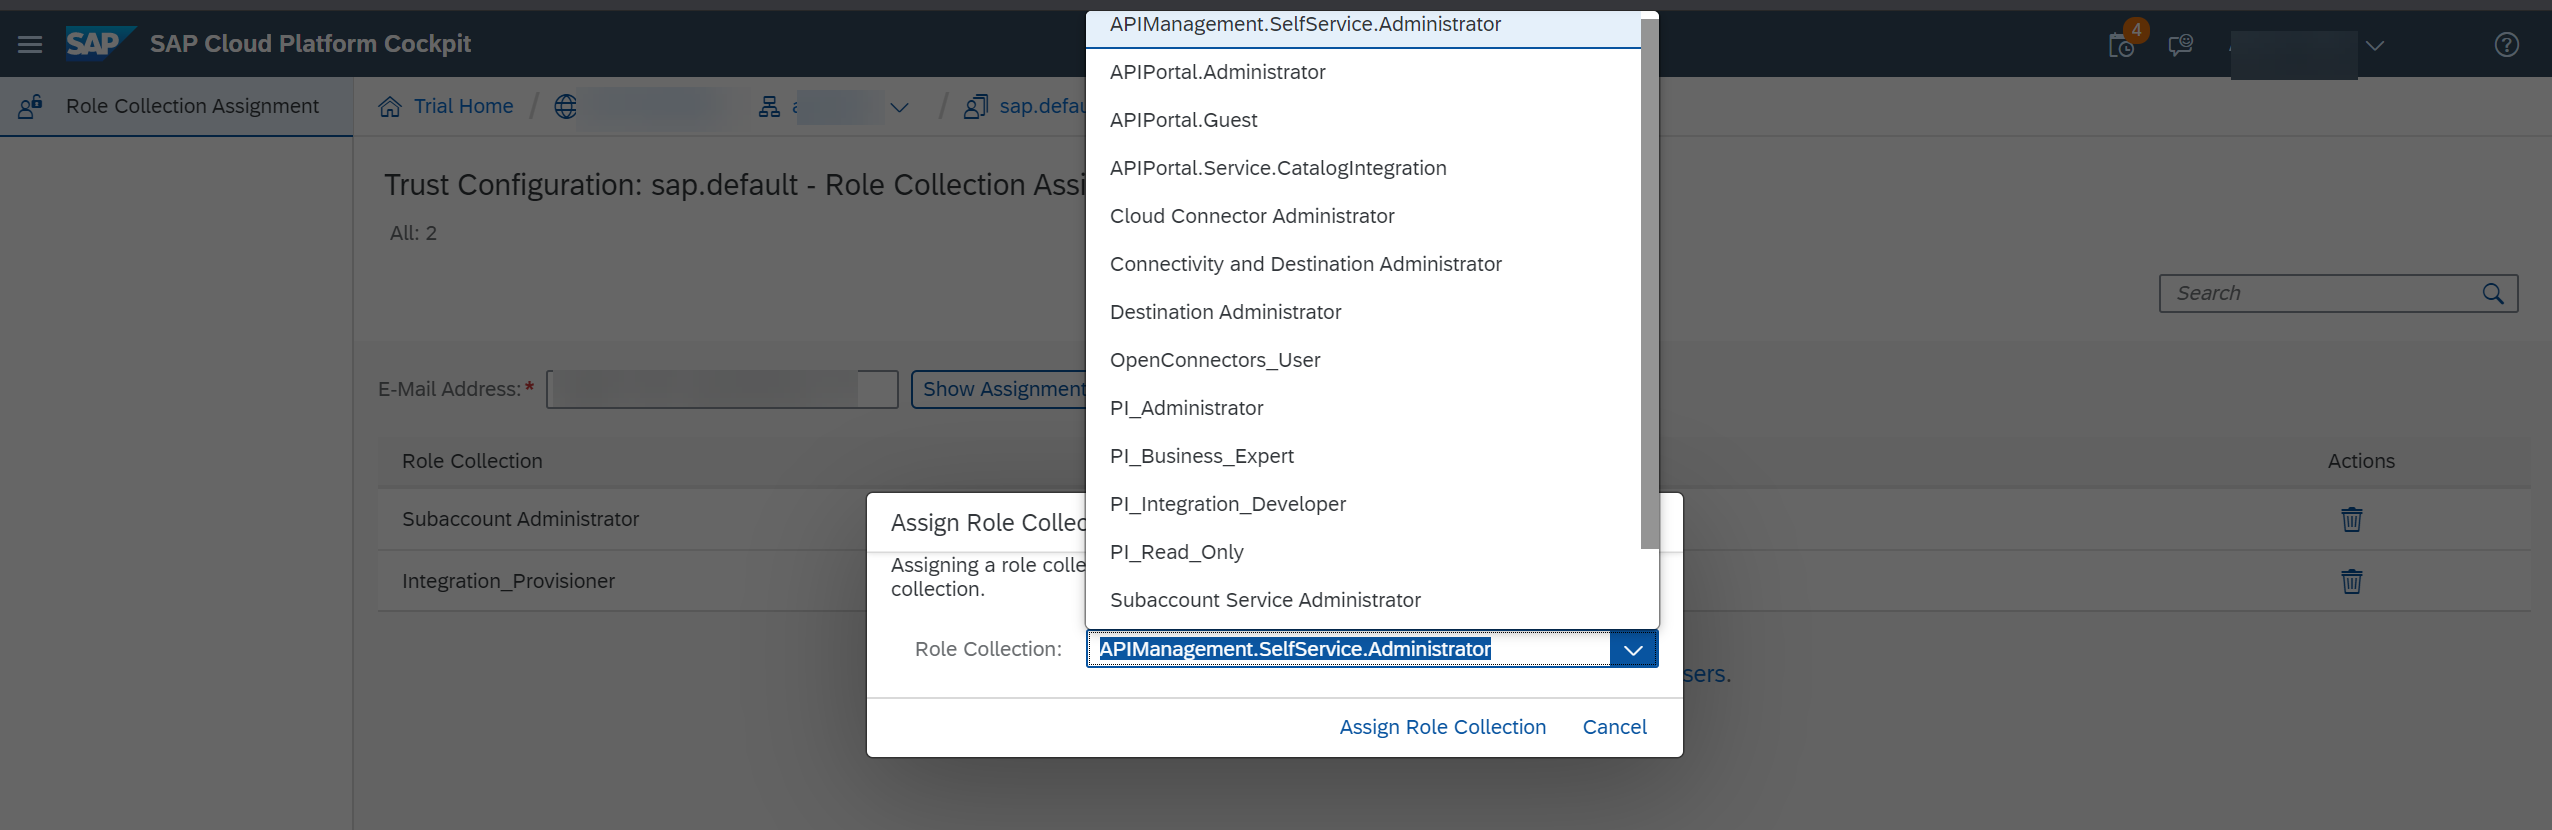 Assign%20Roles%20for%20accessing%20the%20capabilities